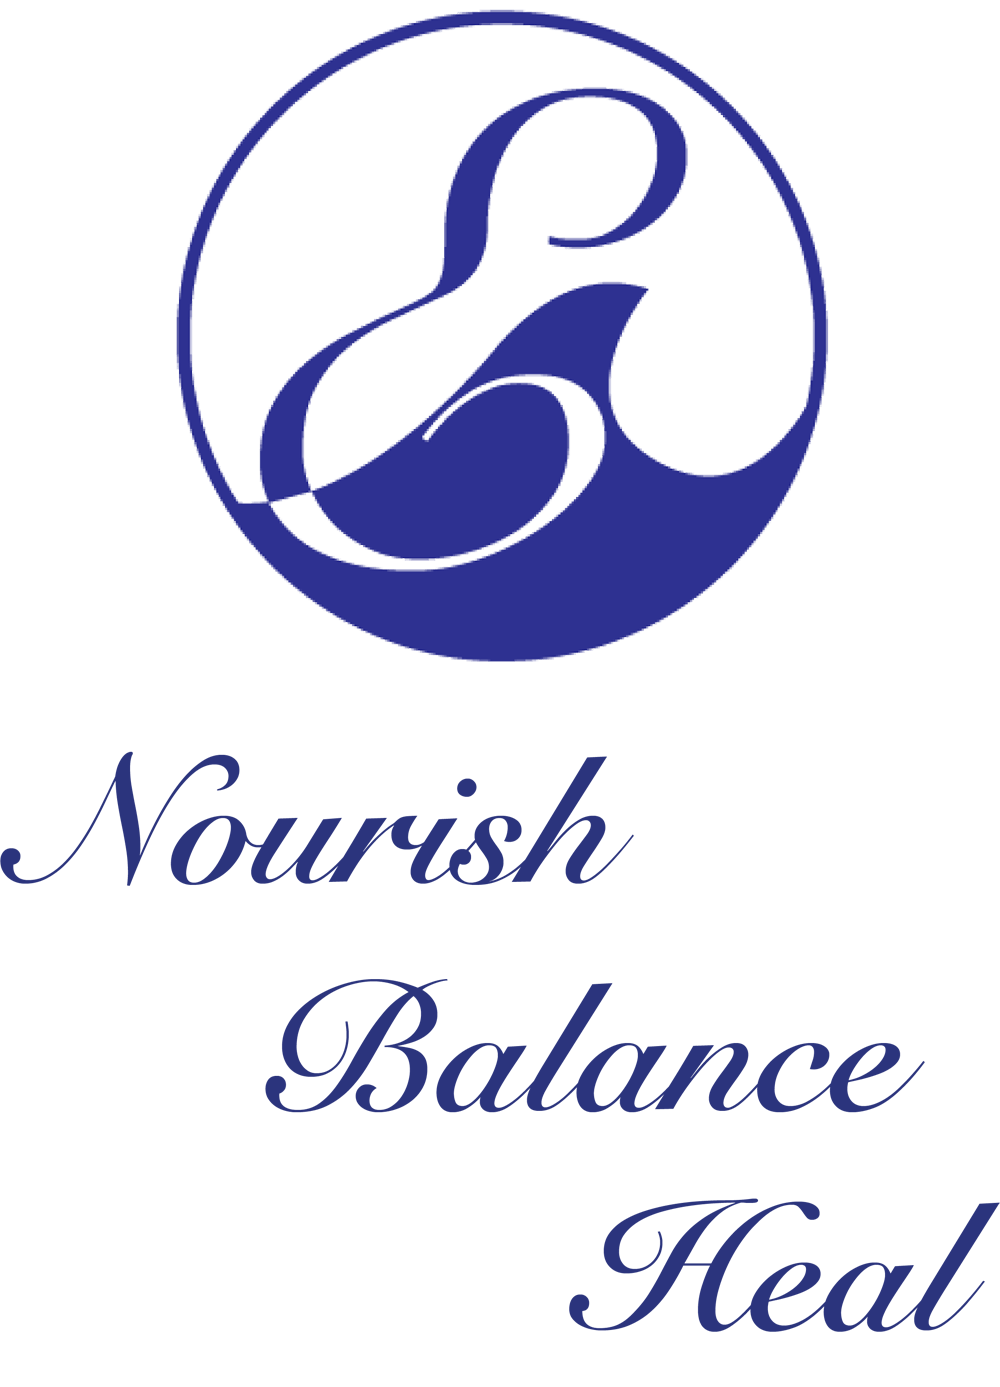 Equilibria Wellness | Nourish Balance Heal